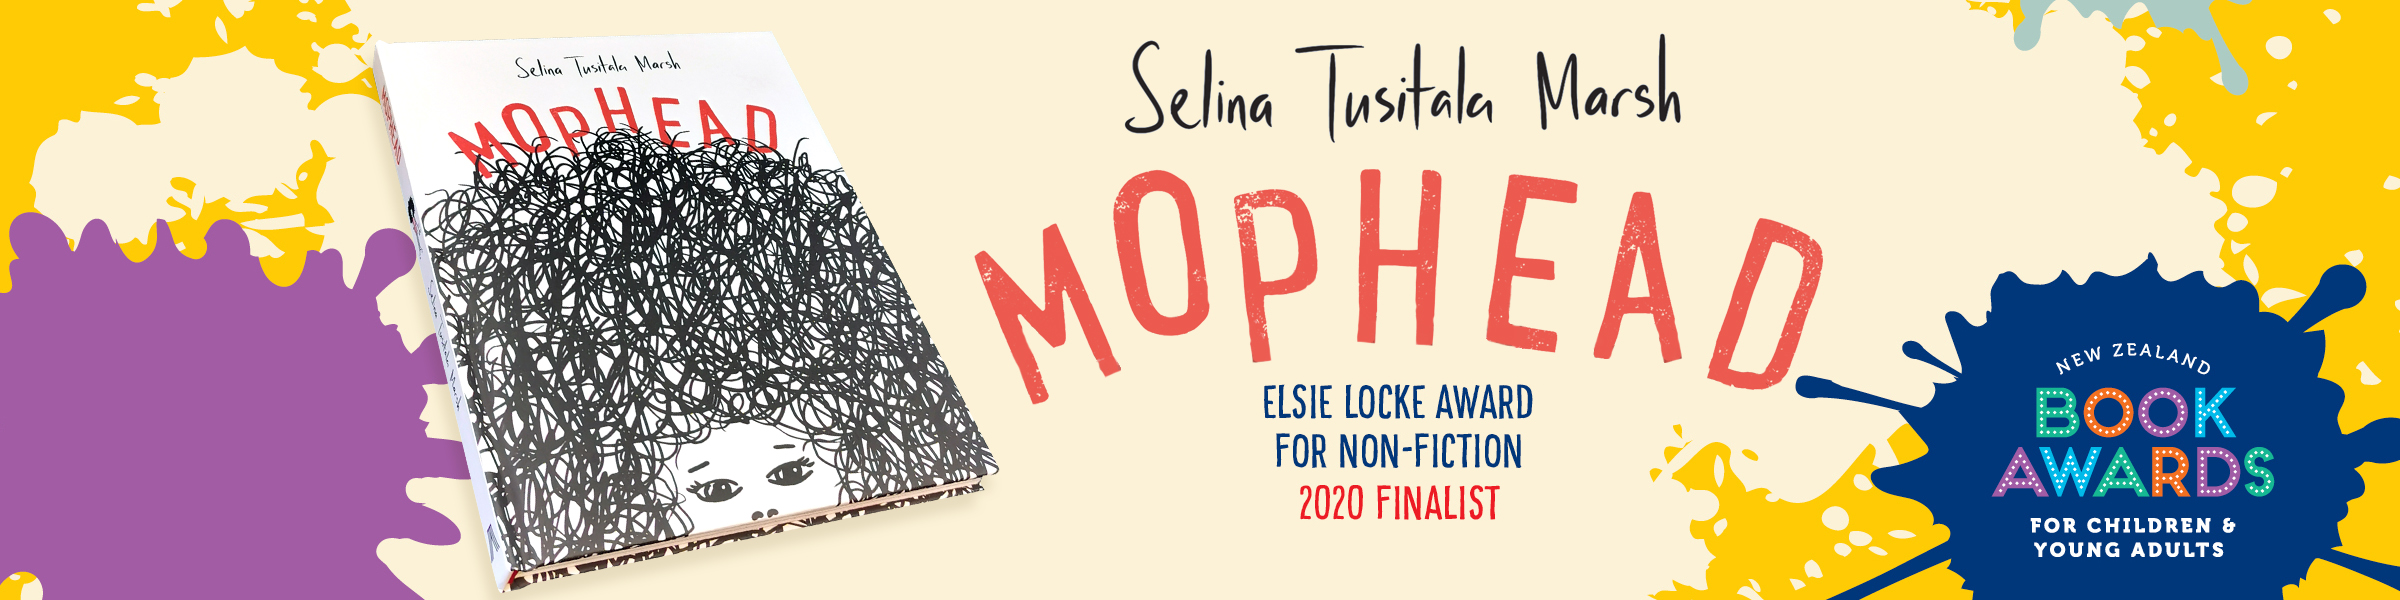 SELINA TUSITALA MARSH'S MOPHEAD A FINALIST IN 2020 NEW ZEALAND BOOK AWARDS FOR CHILDREN AND YOUNG ADULTS